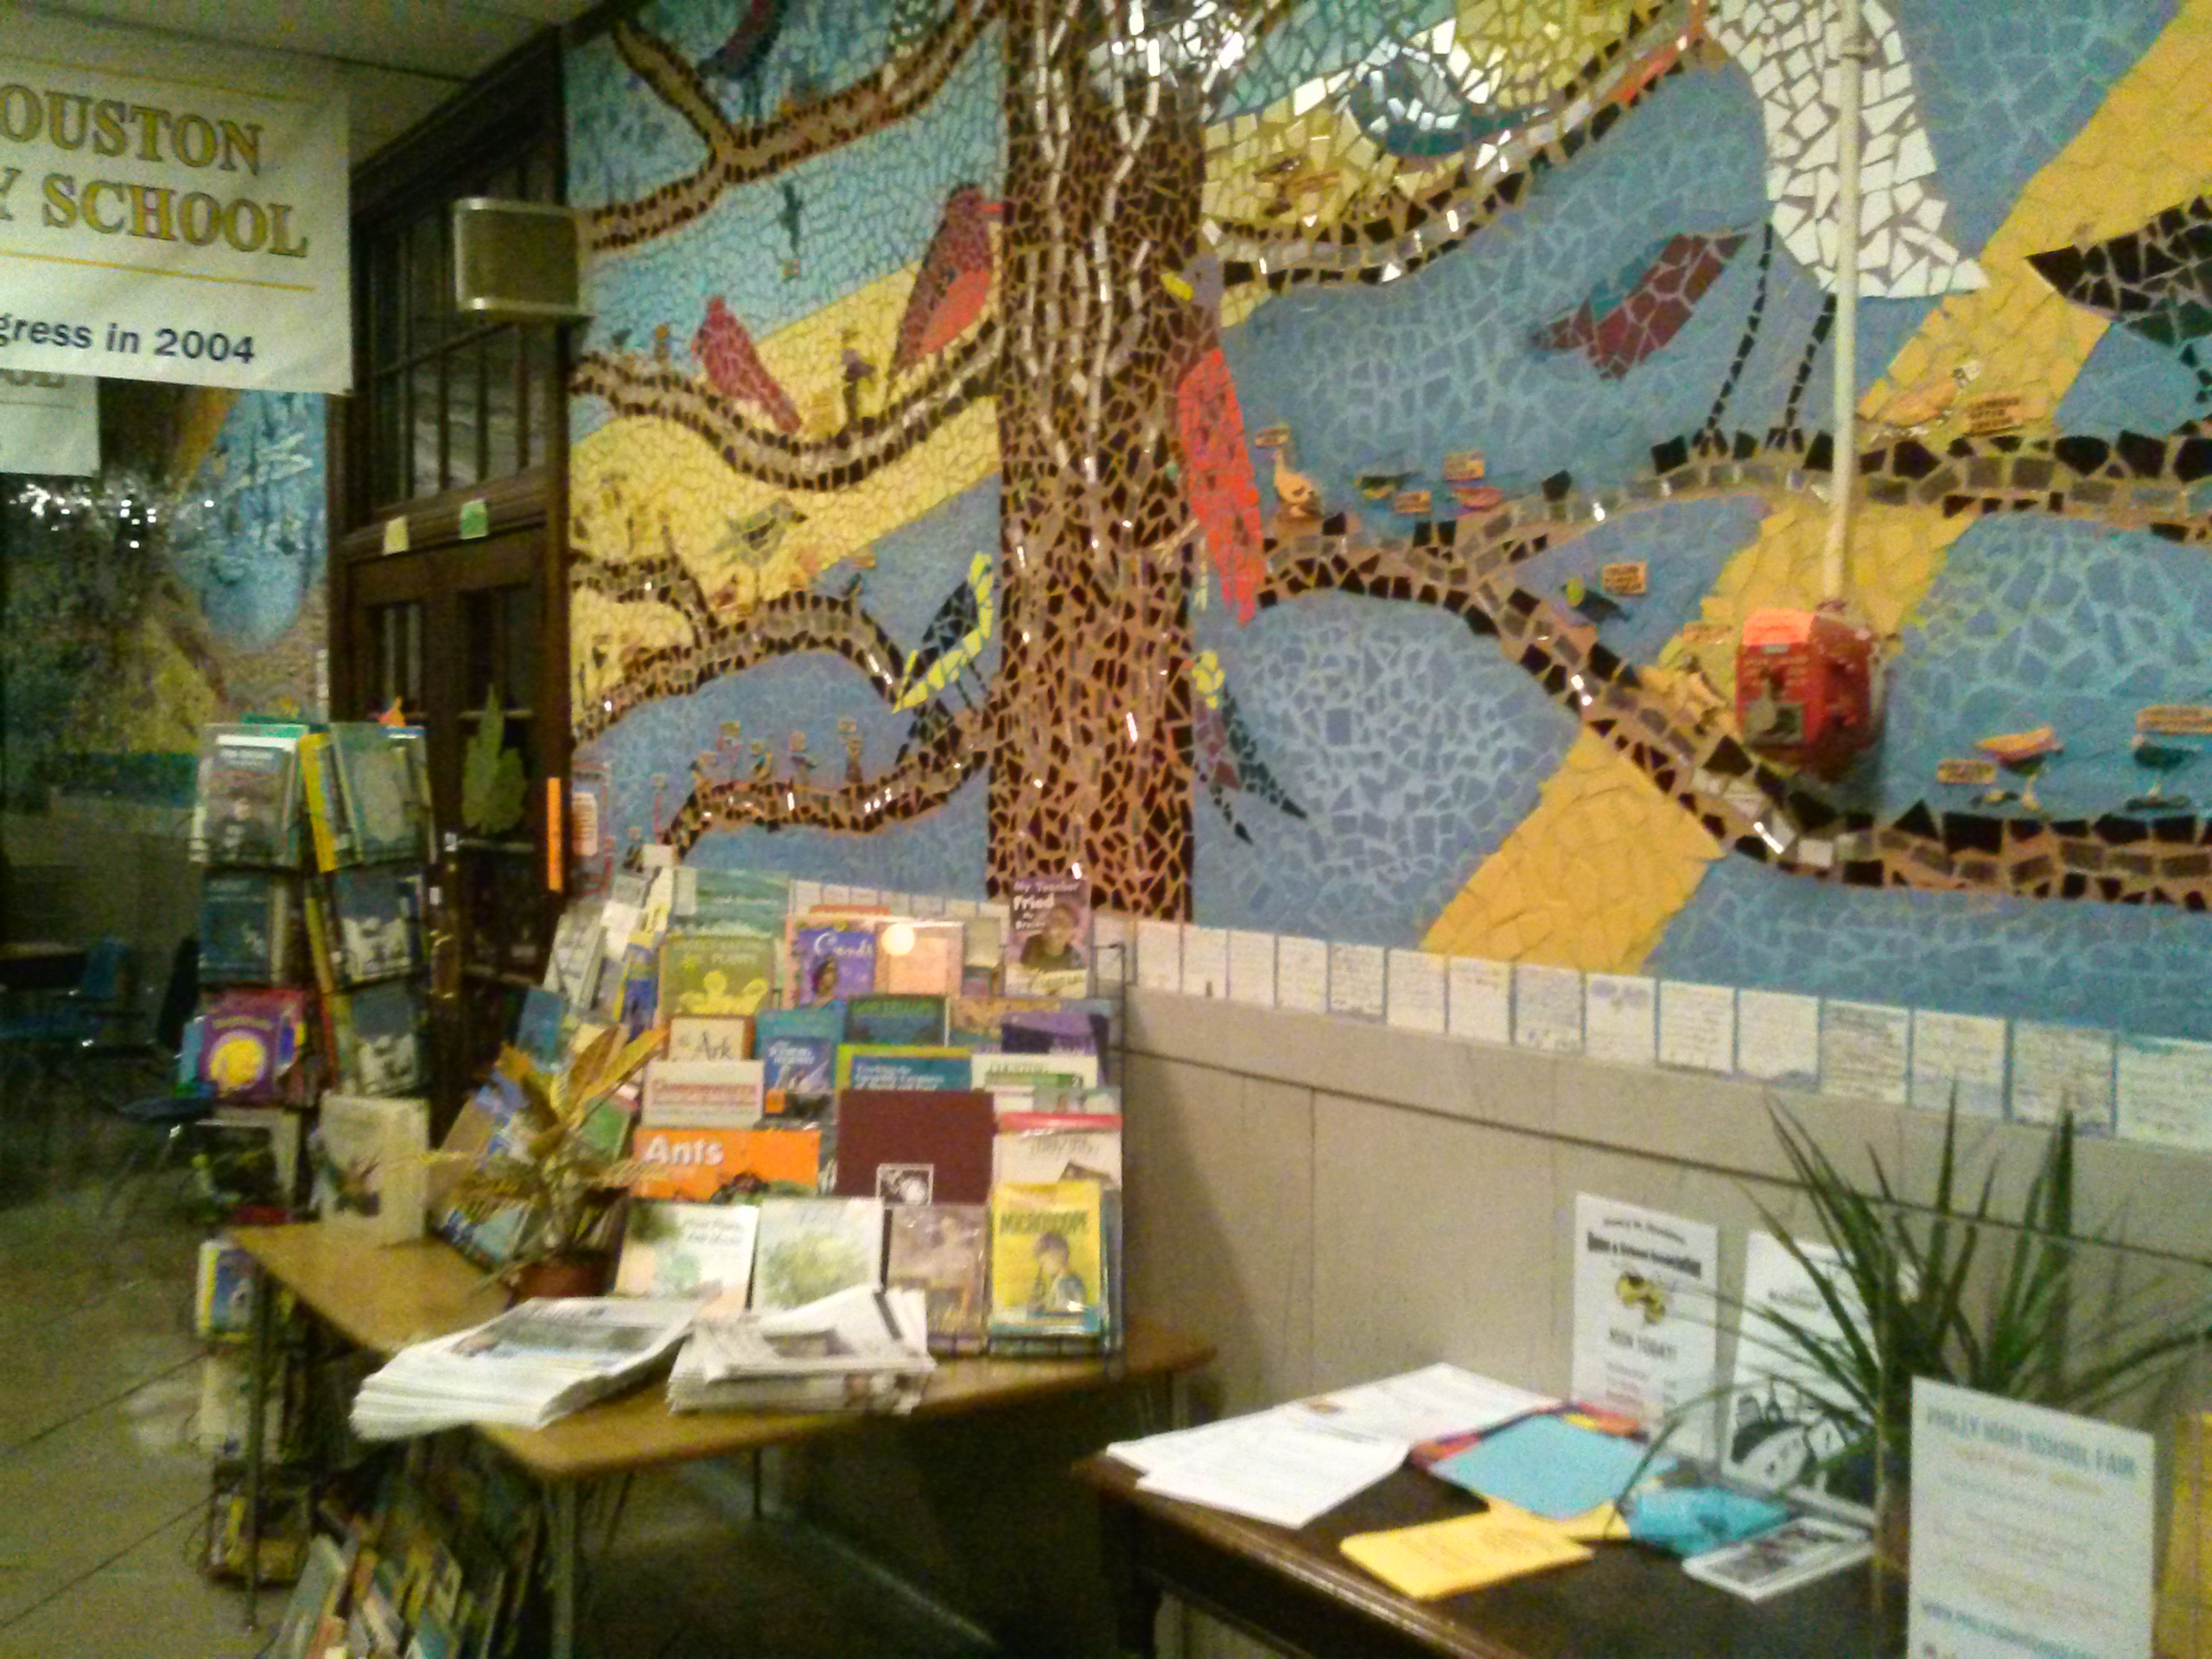 Houston Elementary is full of mosaics and other art to brighten the hallways.